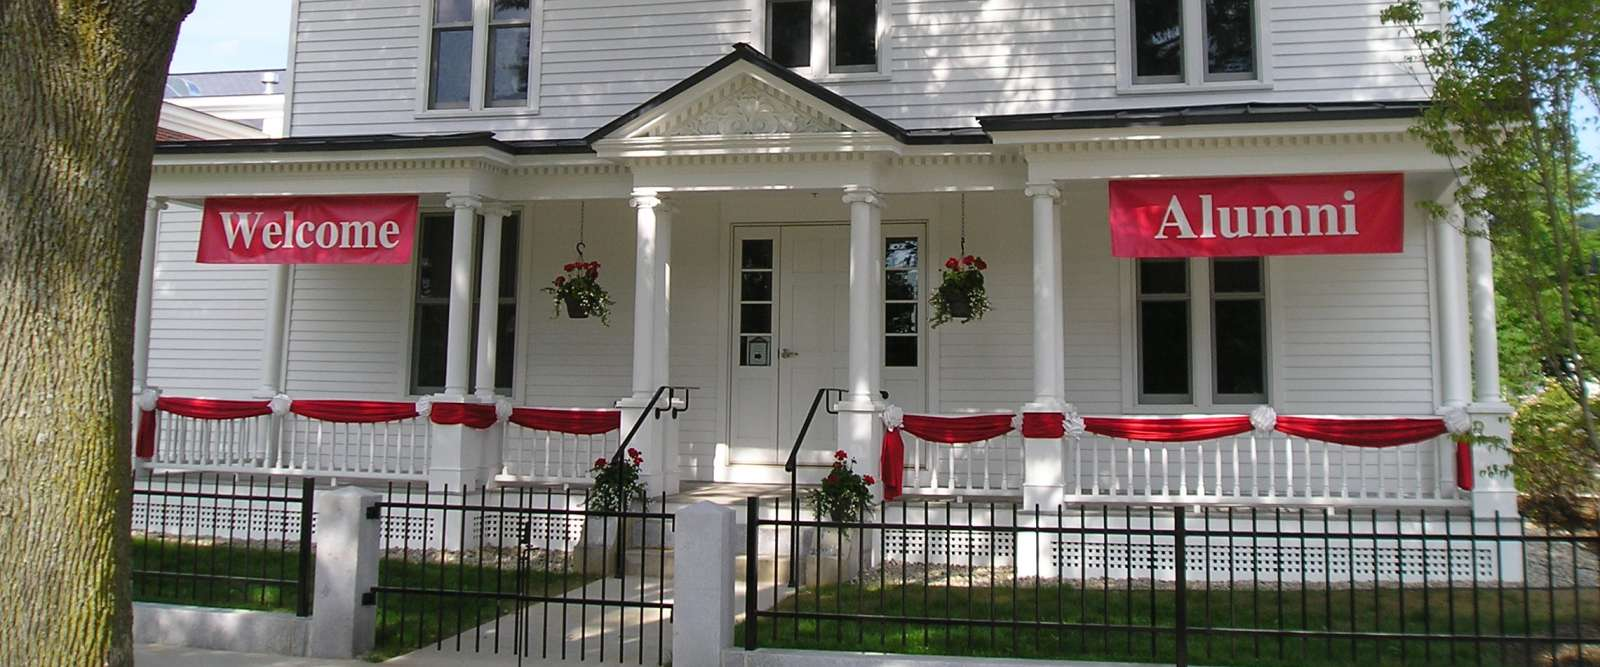 Alumni house, with welcome banner